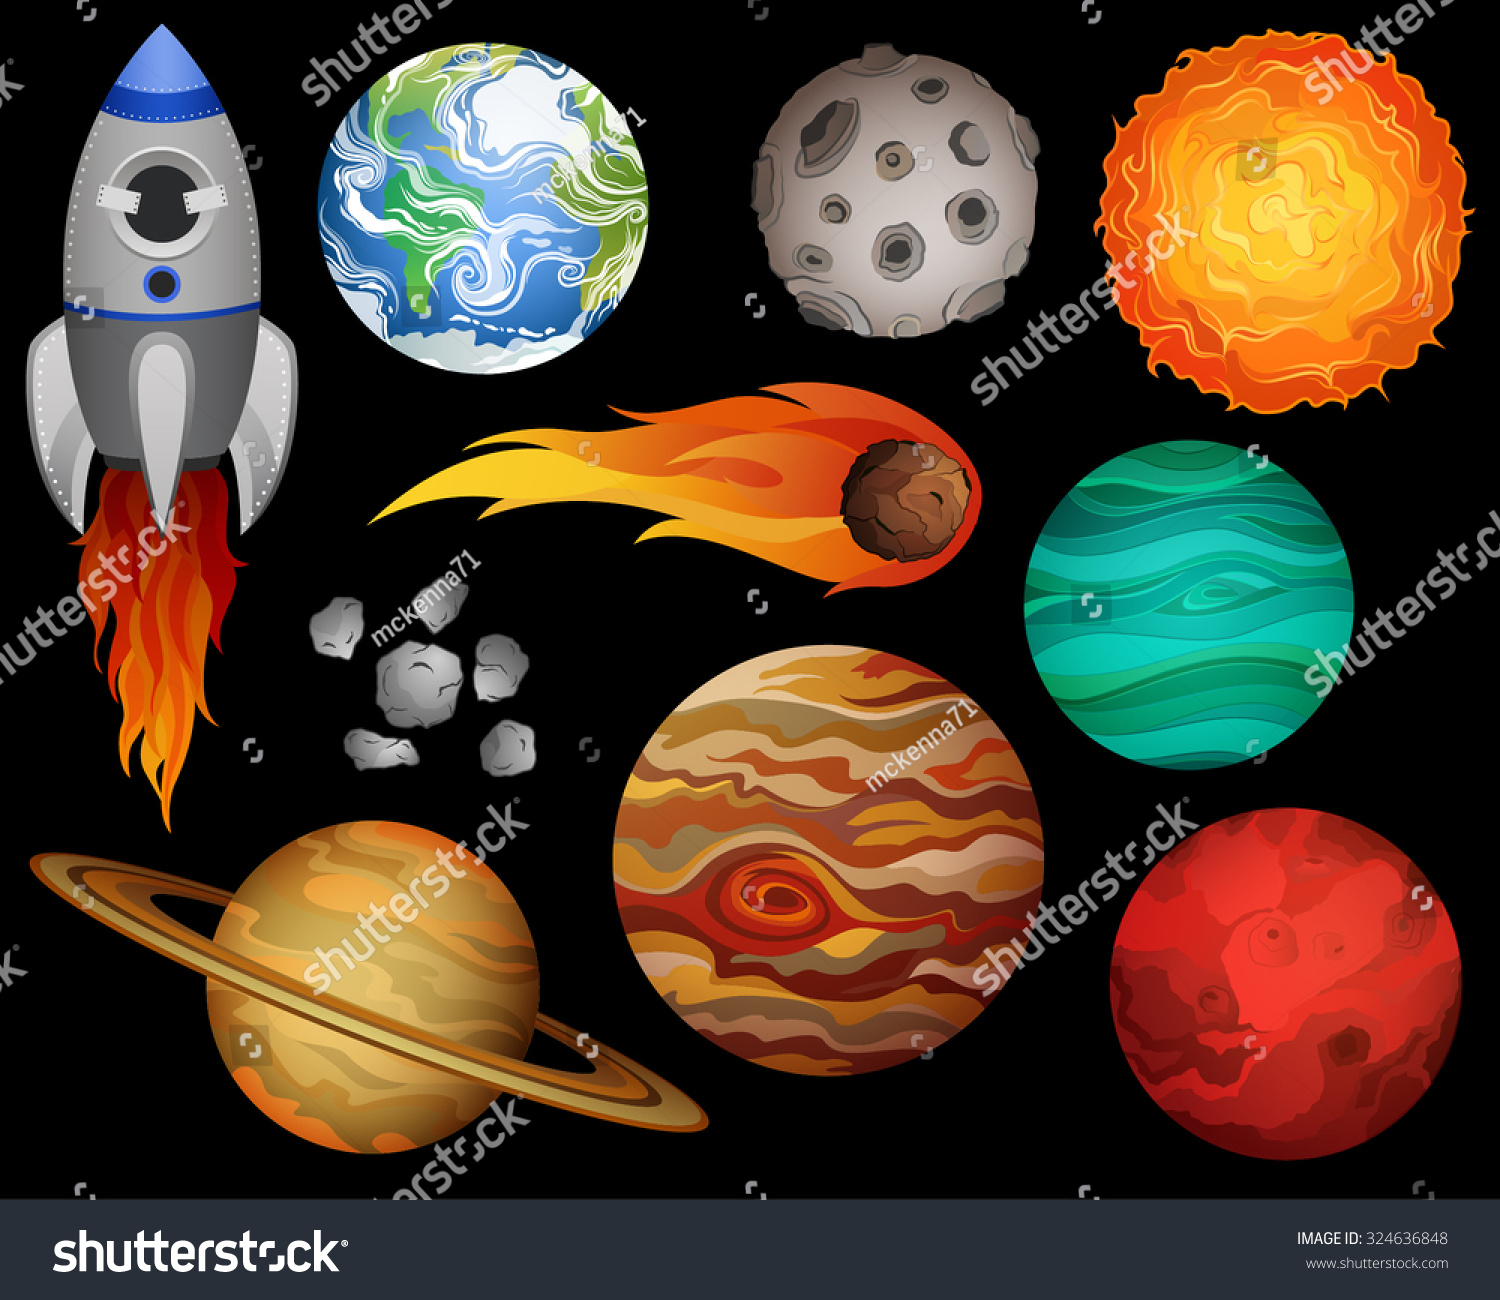 Planets and outer space design elements vector 324636848 for Outer space design